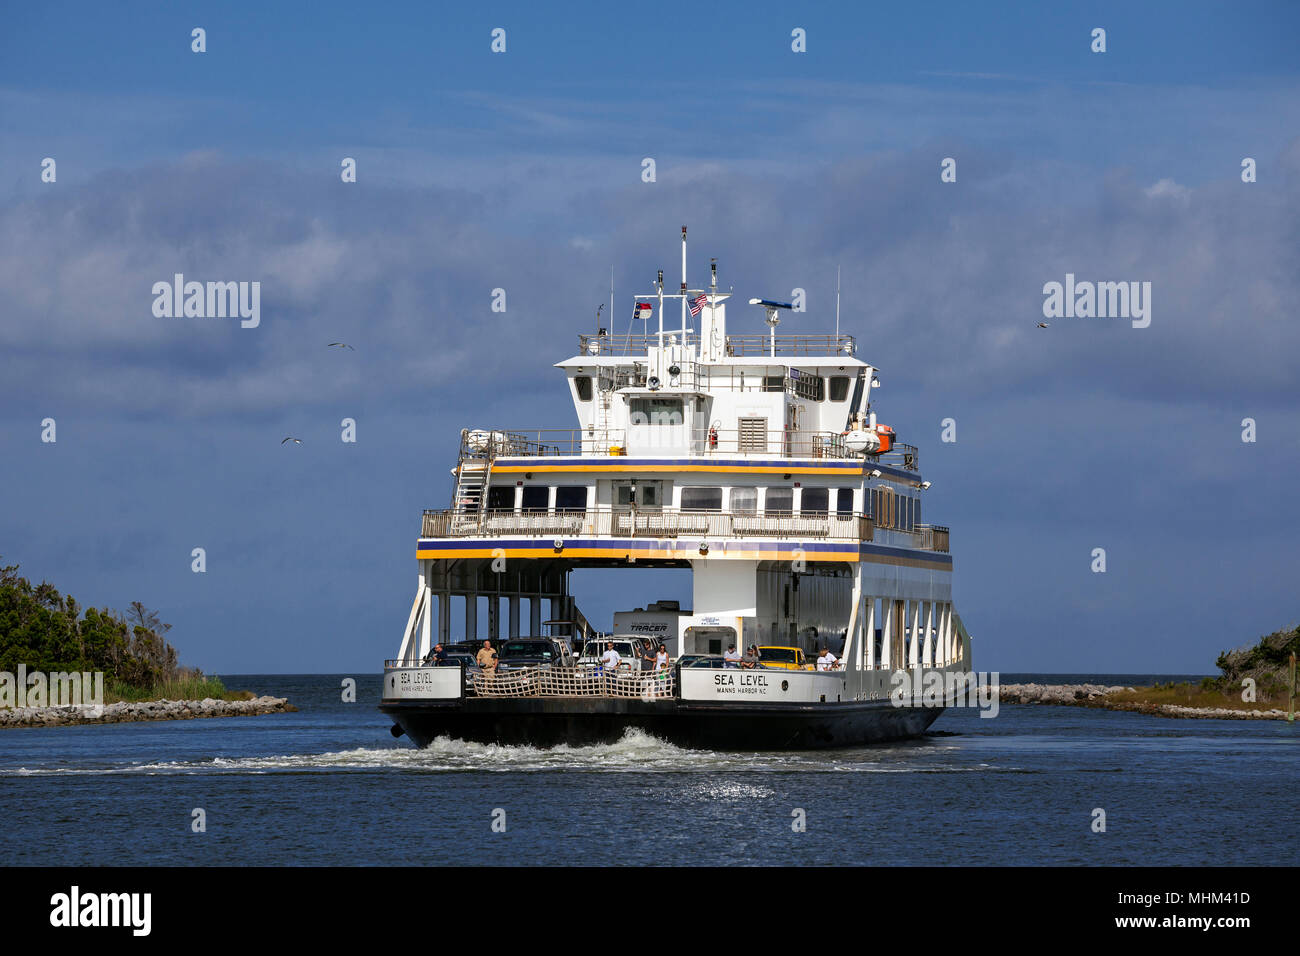 NC01580-00...NORTH CAROLINA - Ferry boat Sea Level leaving Silver Lake Harbor in the town of Ocracoke on Ocracoke Island part of the Outer Banks. Stock Photo